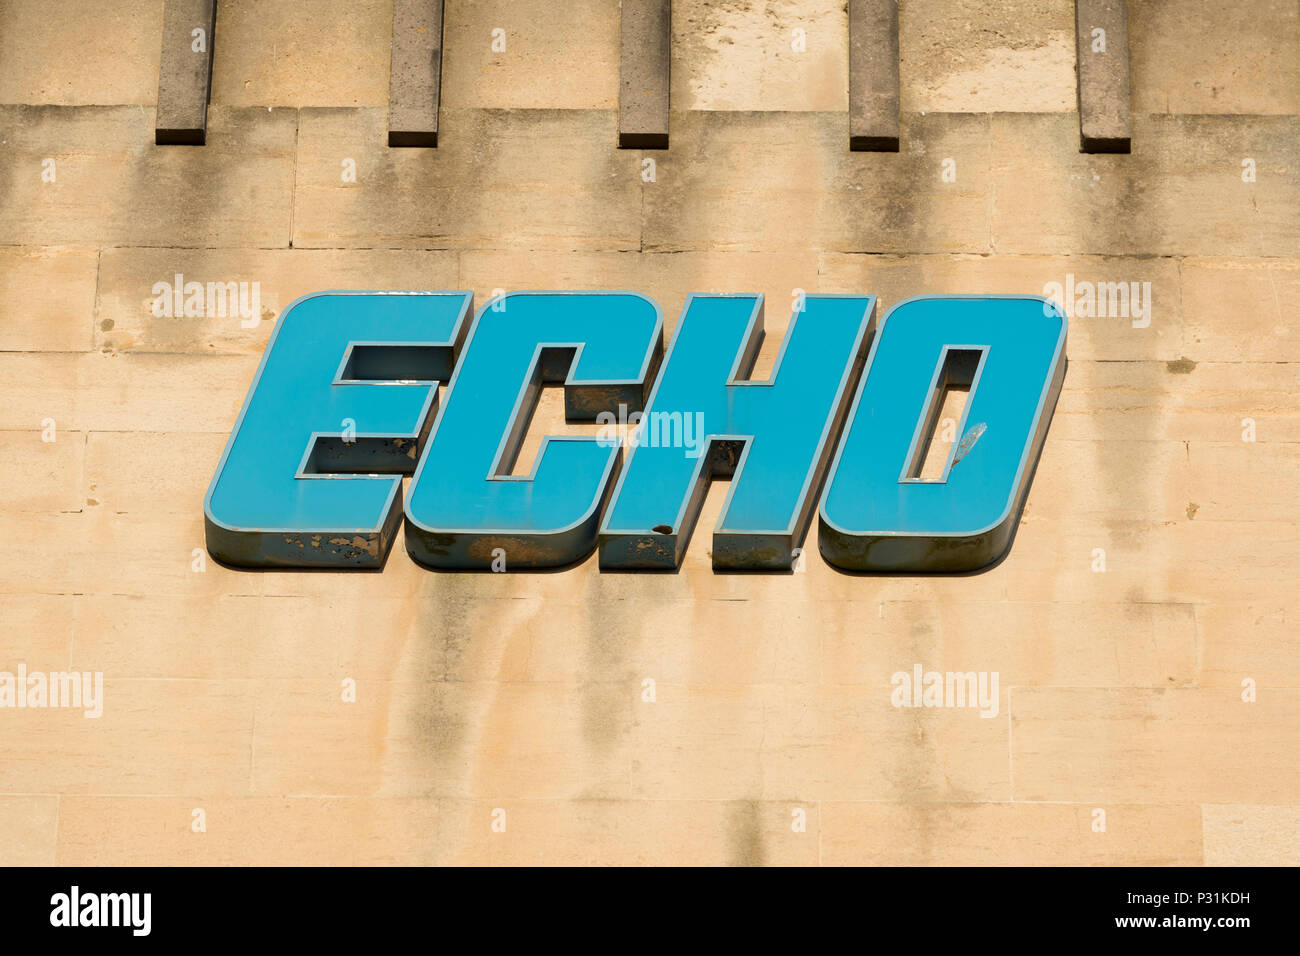 Signage on the building of the Daily Echo newspaper in Bournemouth. - Stock Image